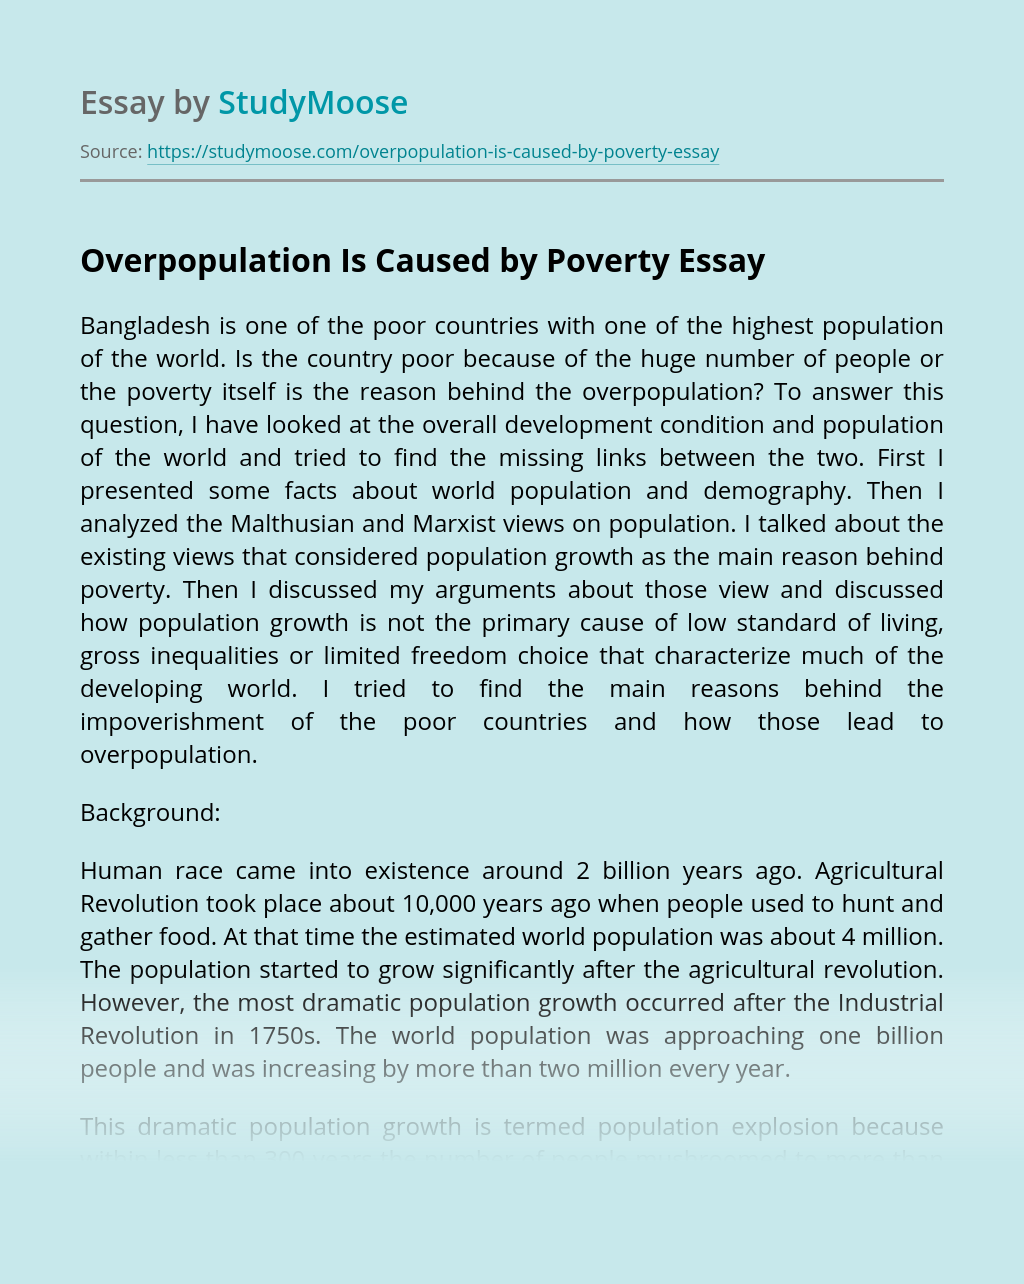 Overpopulation Is Caused by Poverty